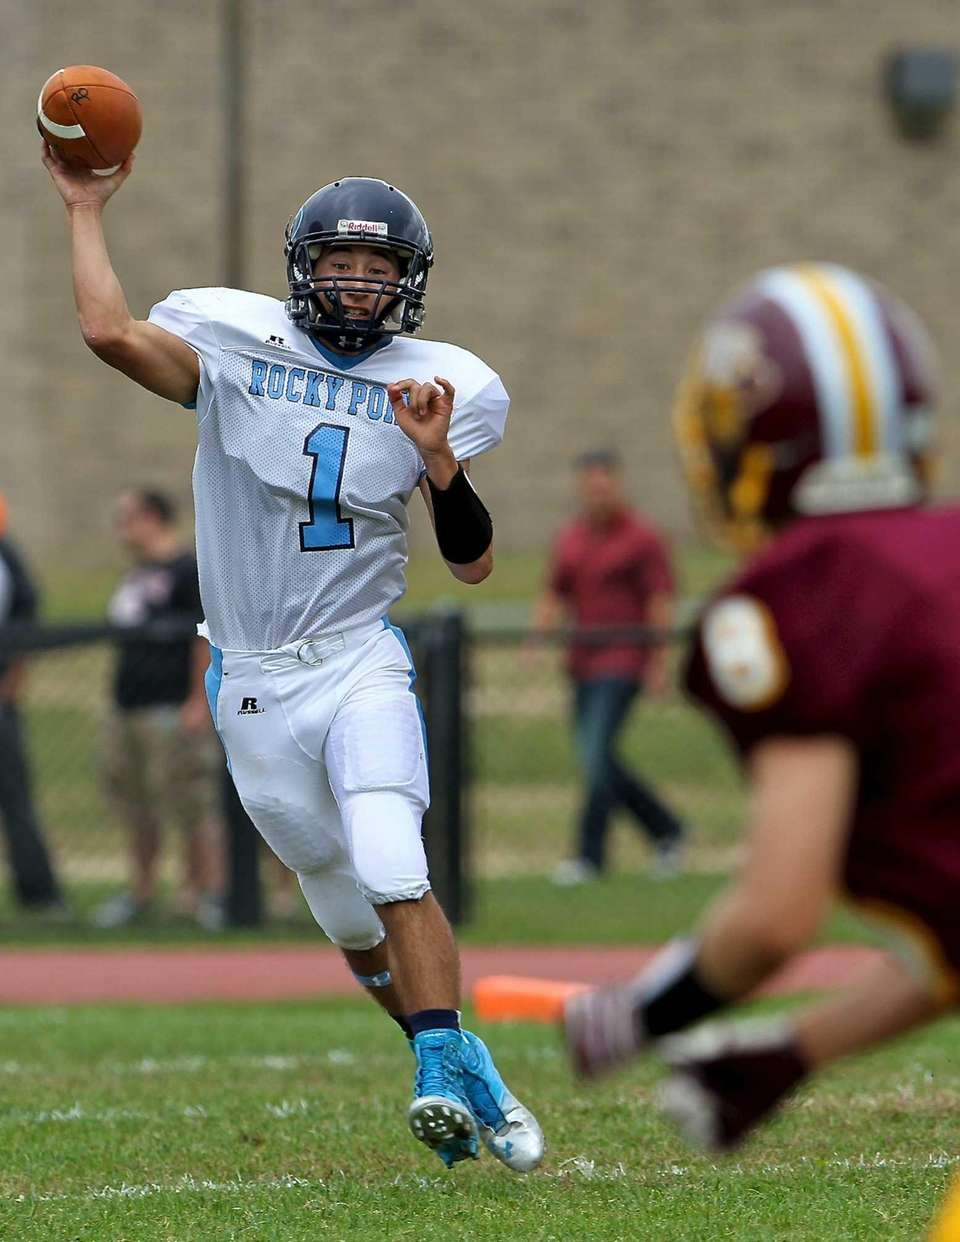 Rocky Point quarterback Quentin Lambert looks to pass